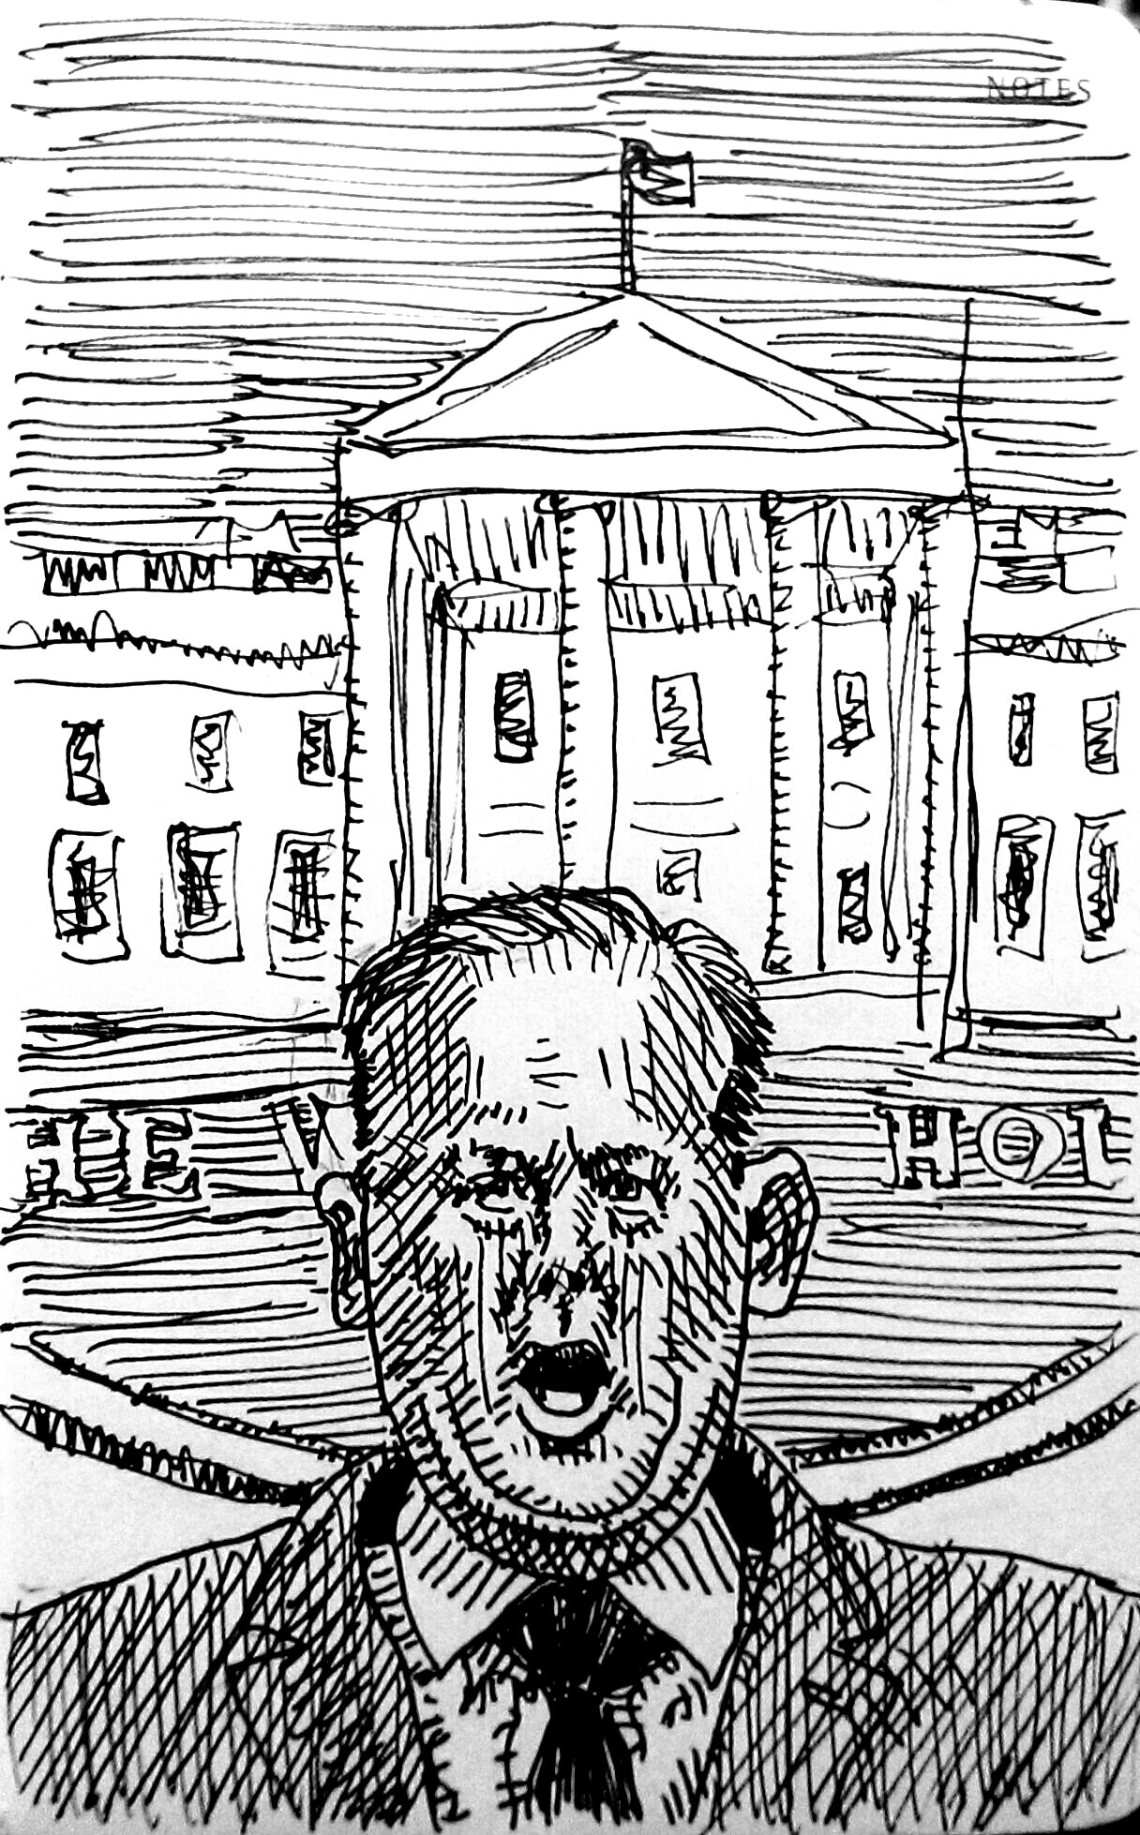 Sean Spicer illustration